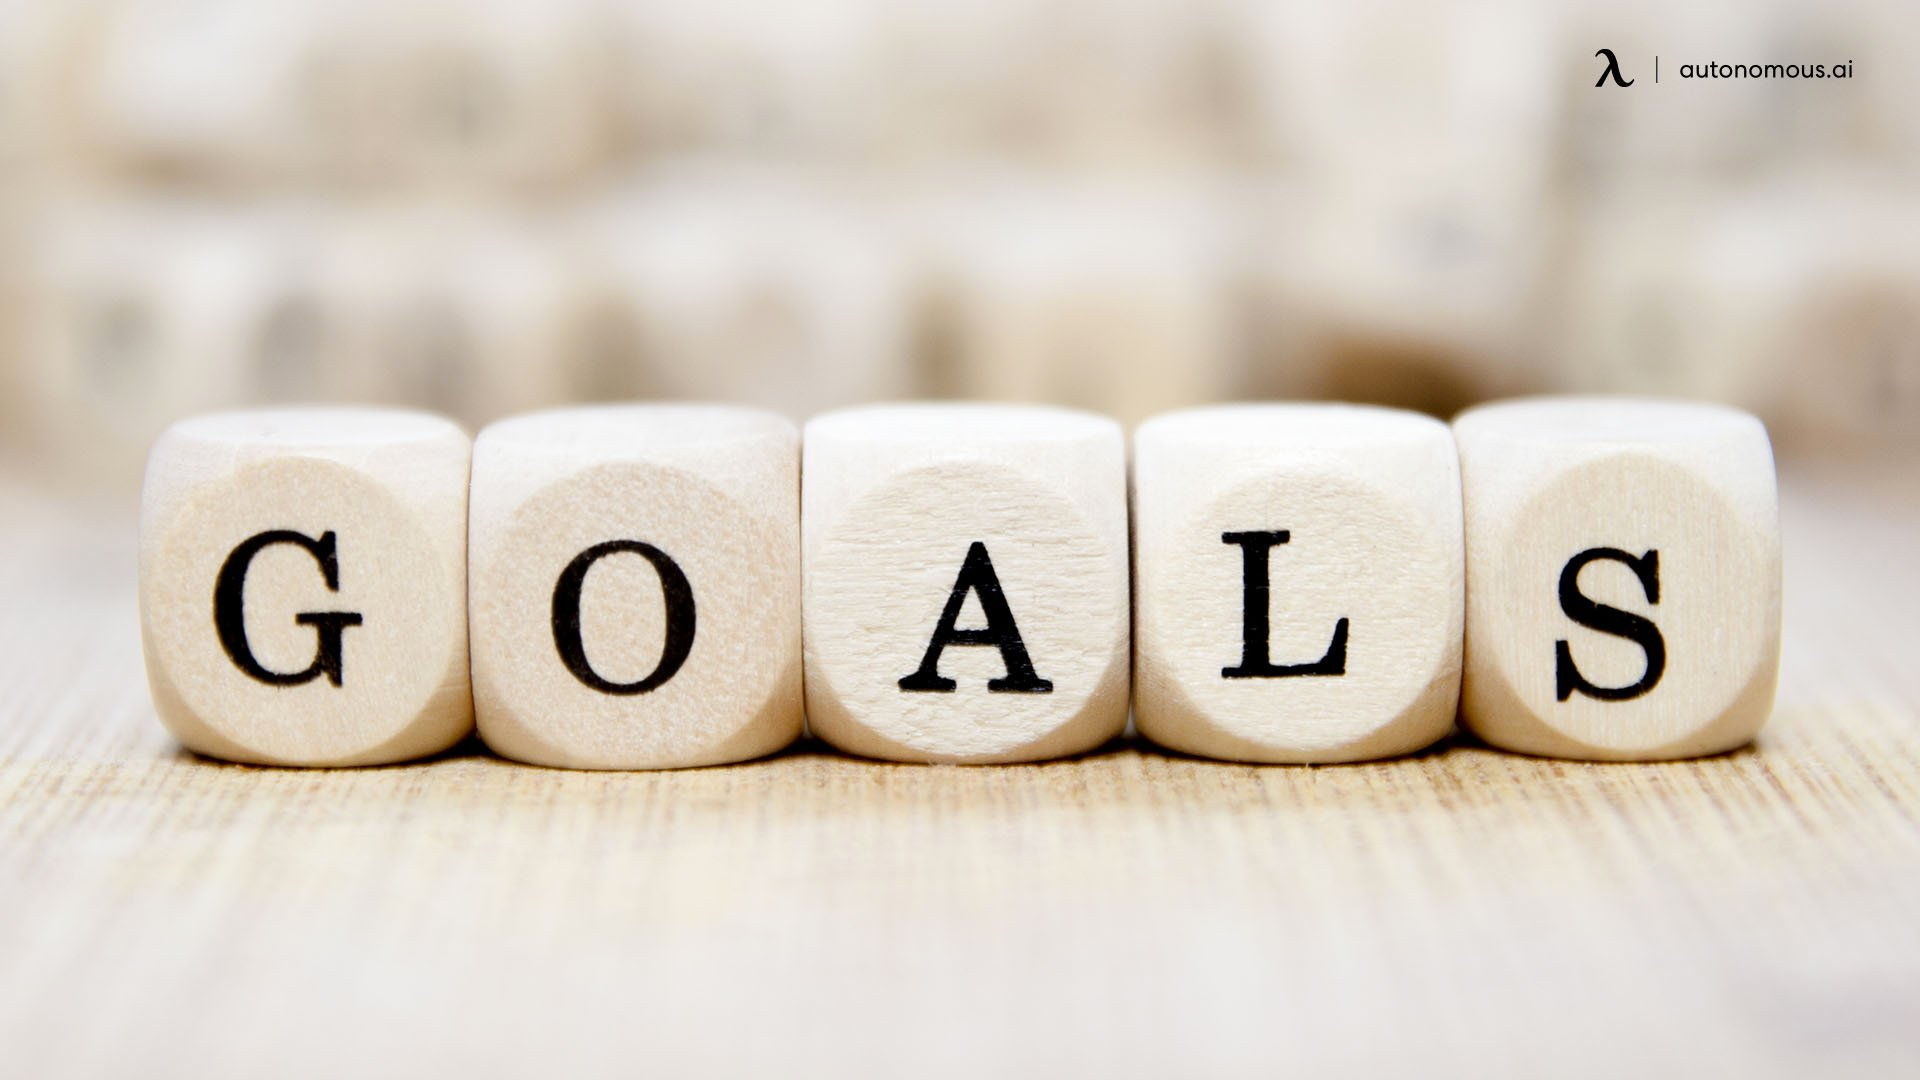 What is your ultimate goal?